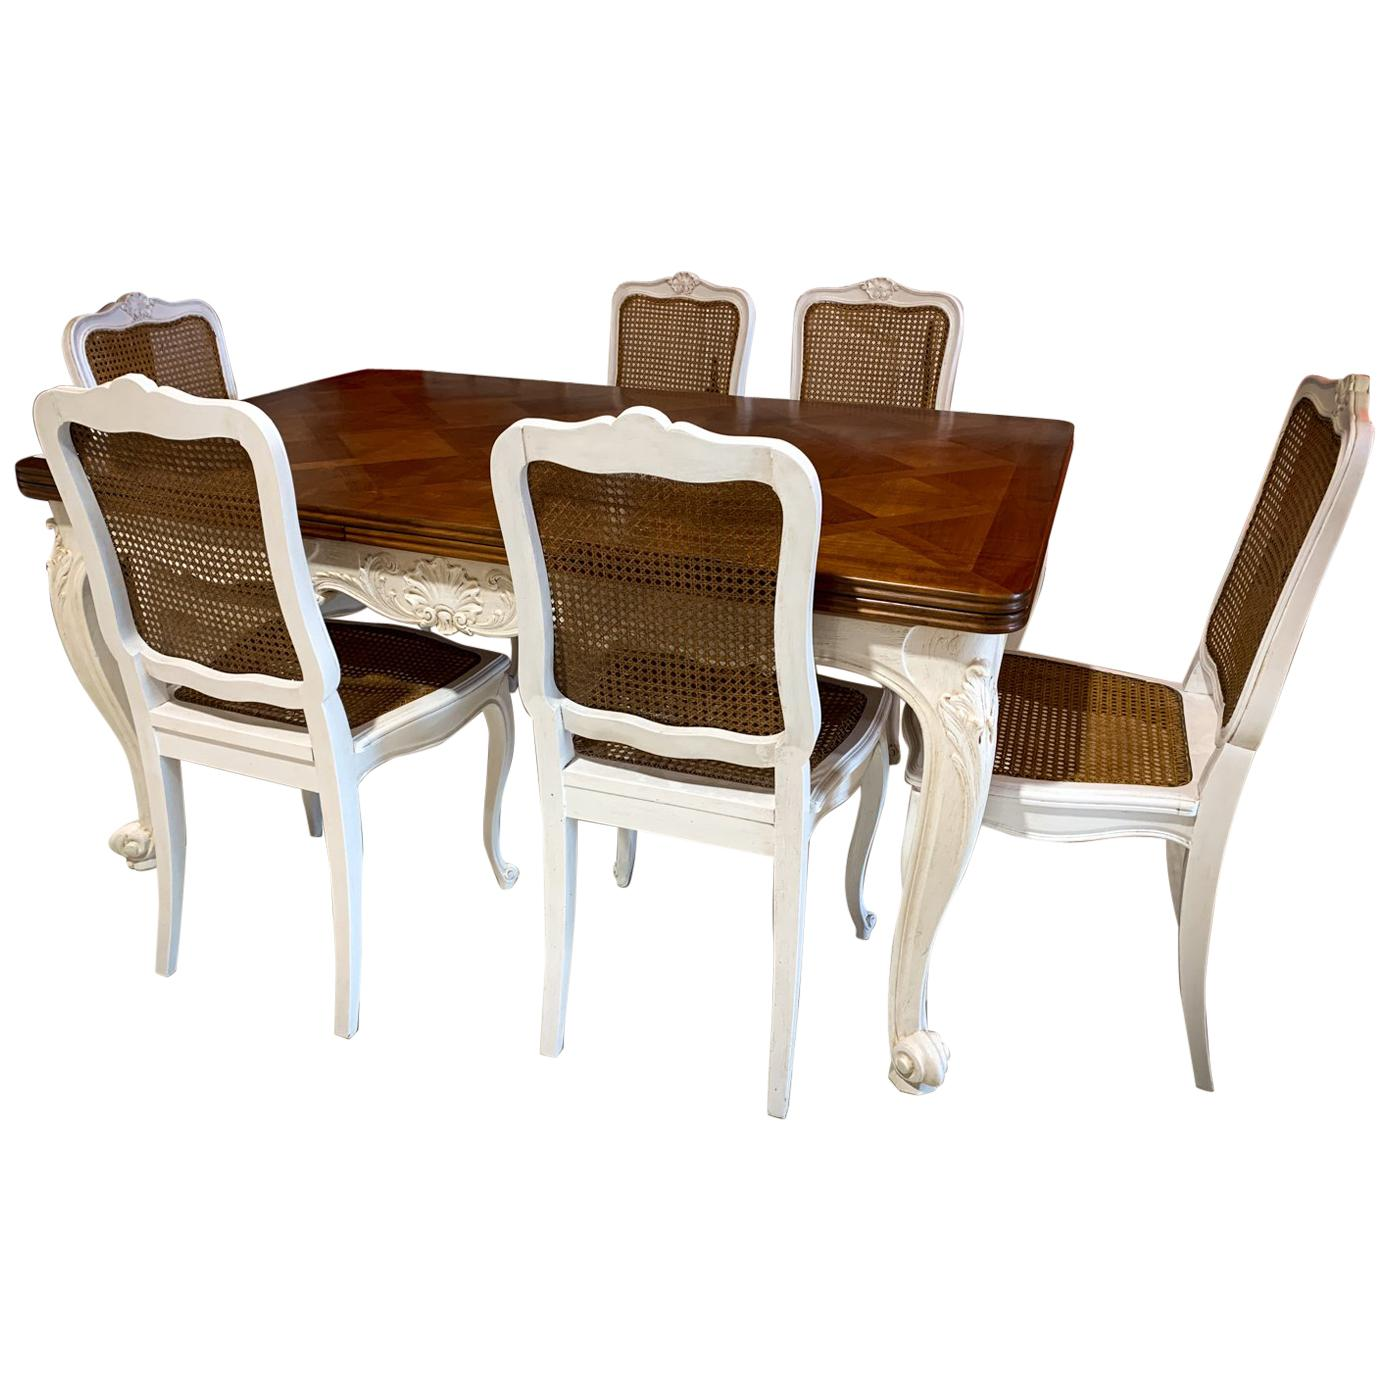 Complete Dining Room With Table, Six Chairs And French Provencal Sideboard,  1920